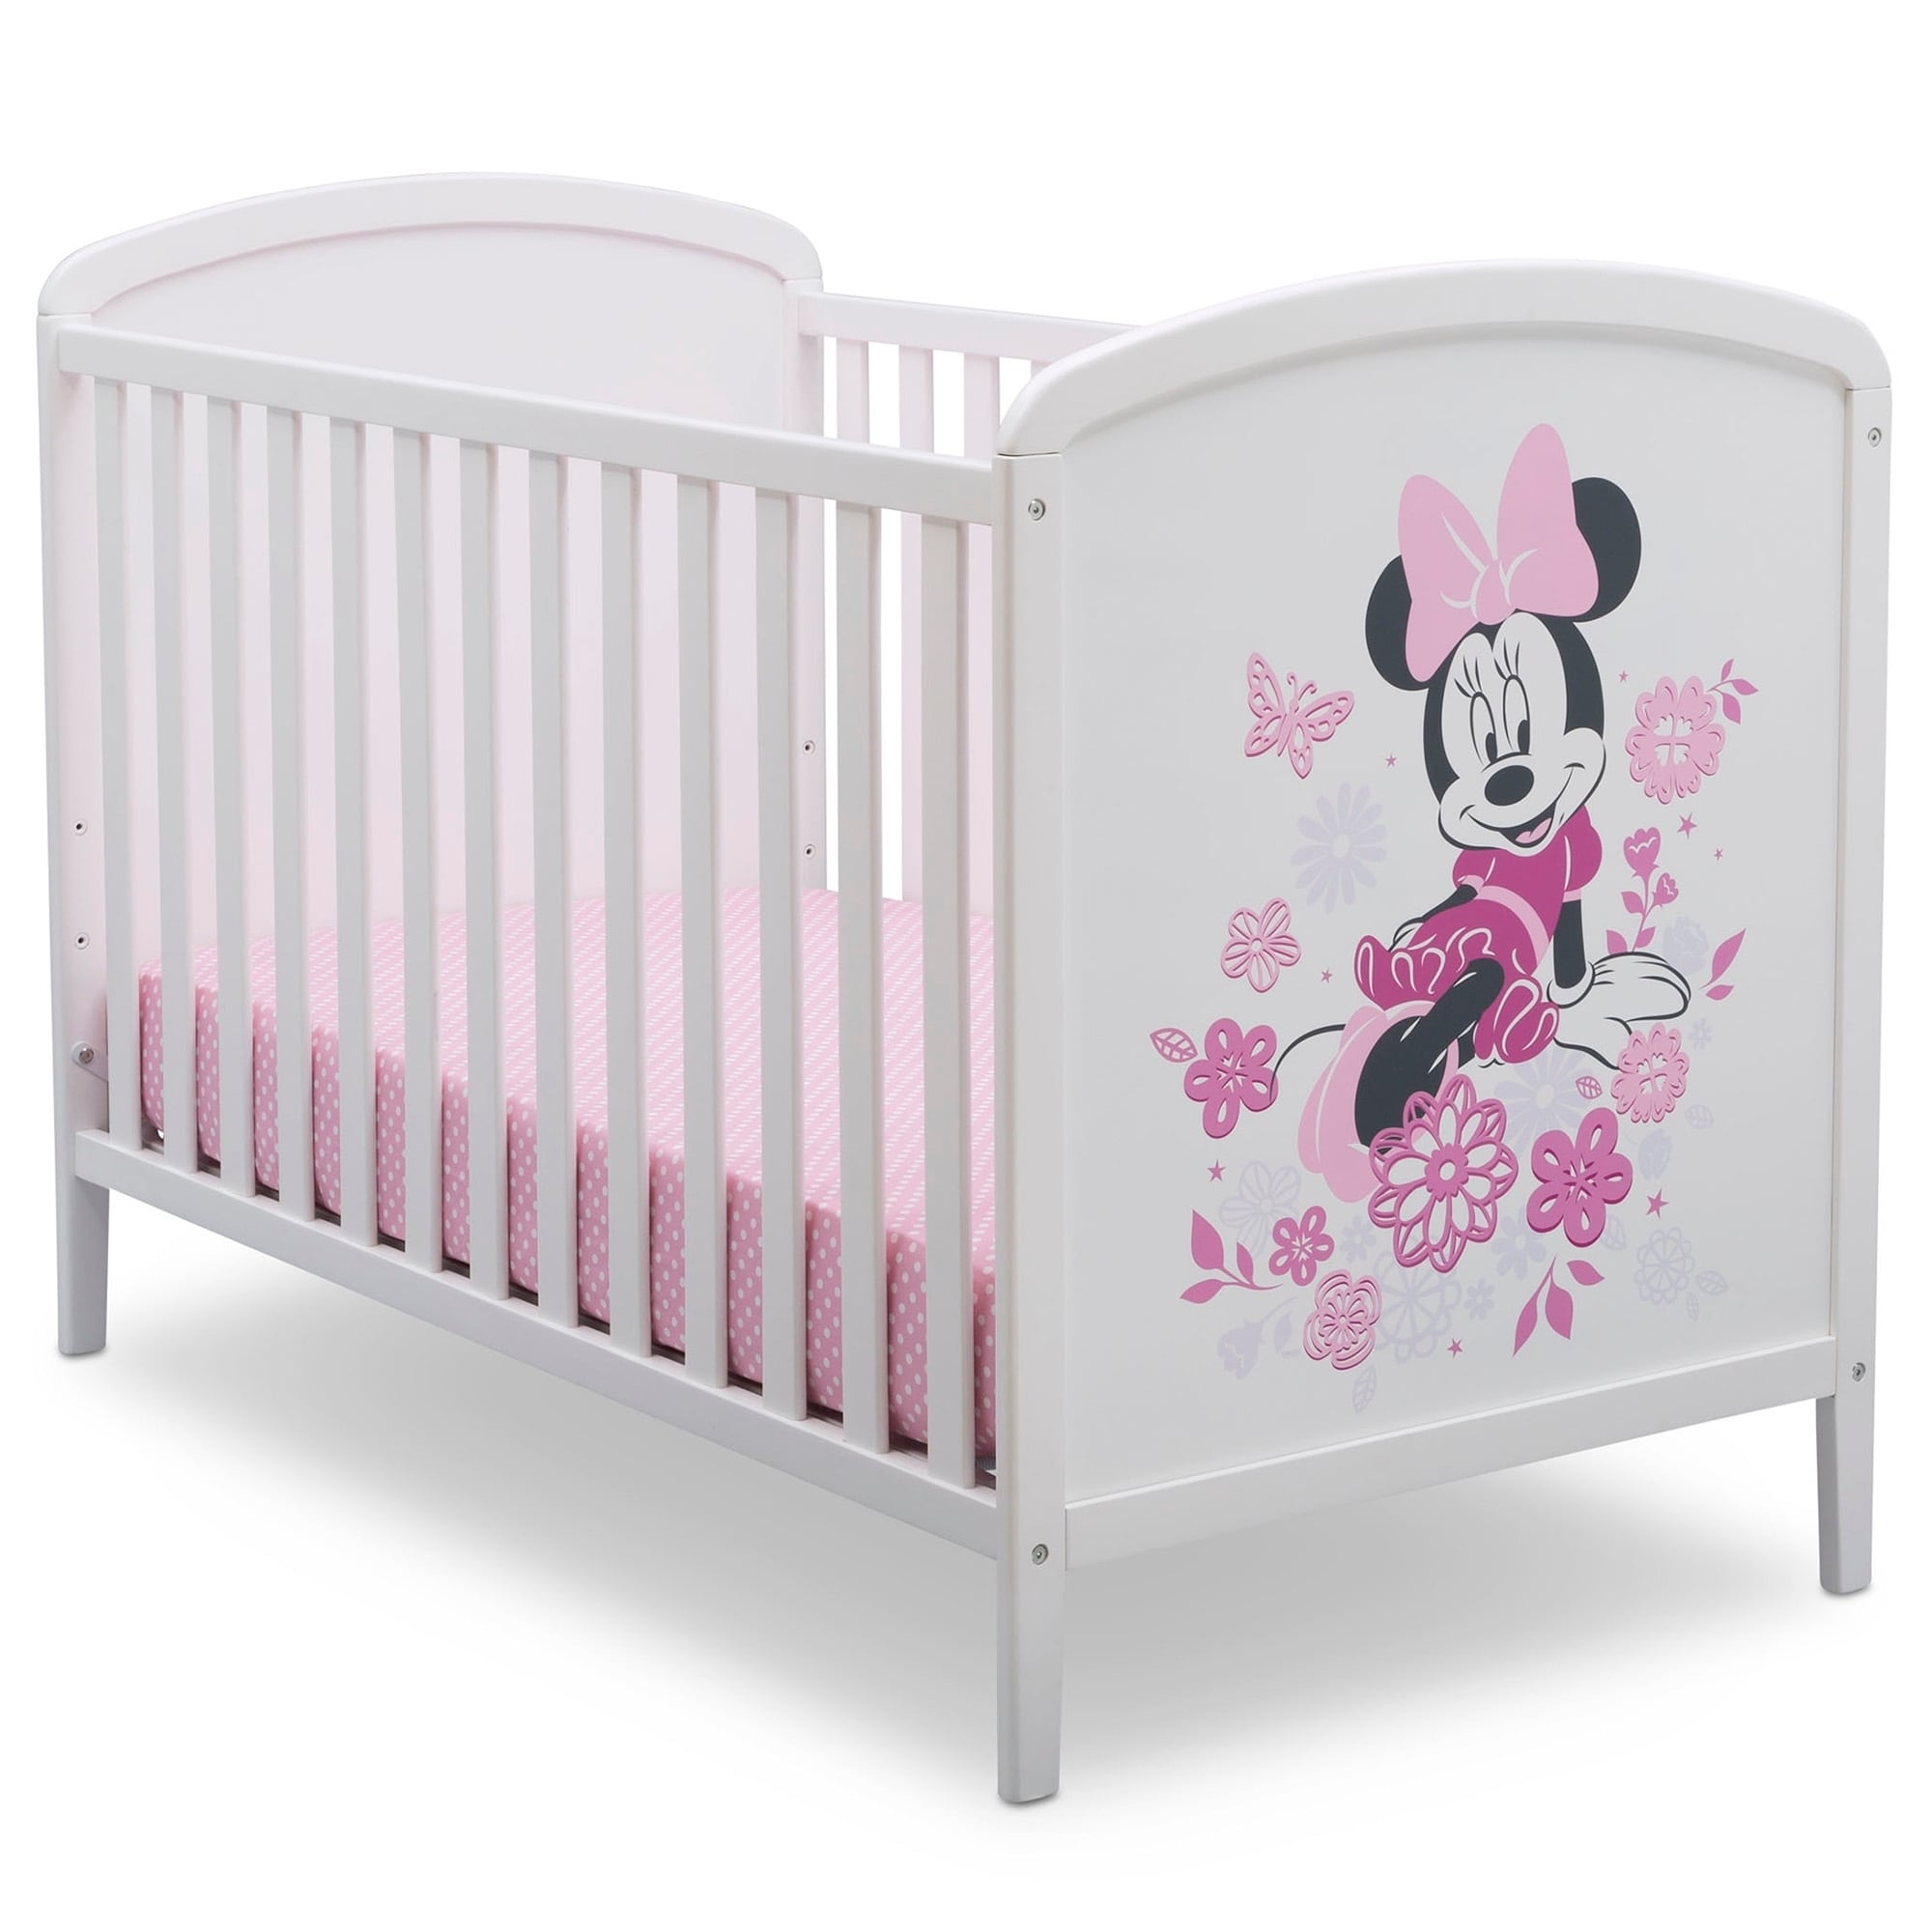 Disney Minnie Mouse 3-in-1 Convertible Baby Crib by Delta Children - Modern  & Contemporary